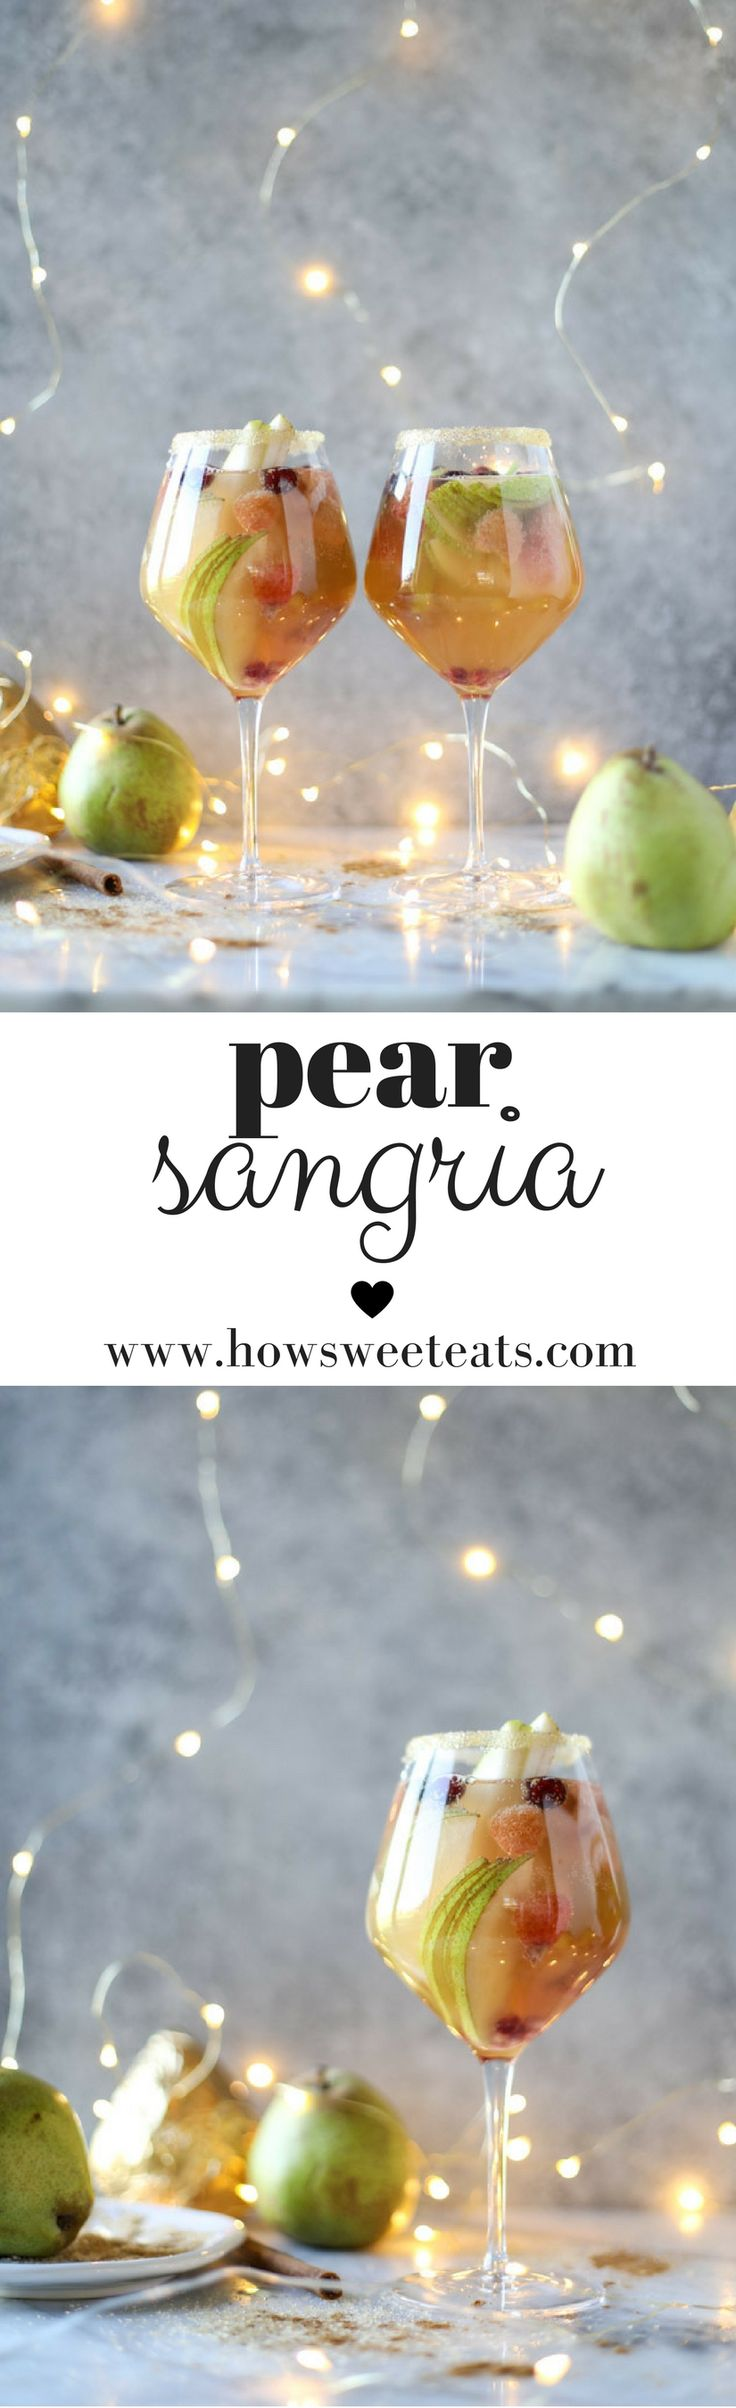 Pear Sangria! The perfect drink for your holiday season! I howsweeteats.com @howsweeteats #christmas #holidays